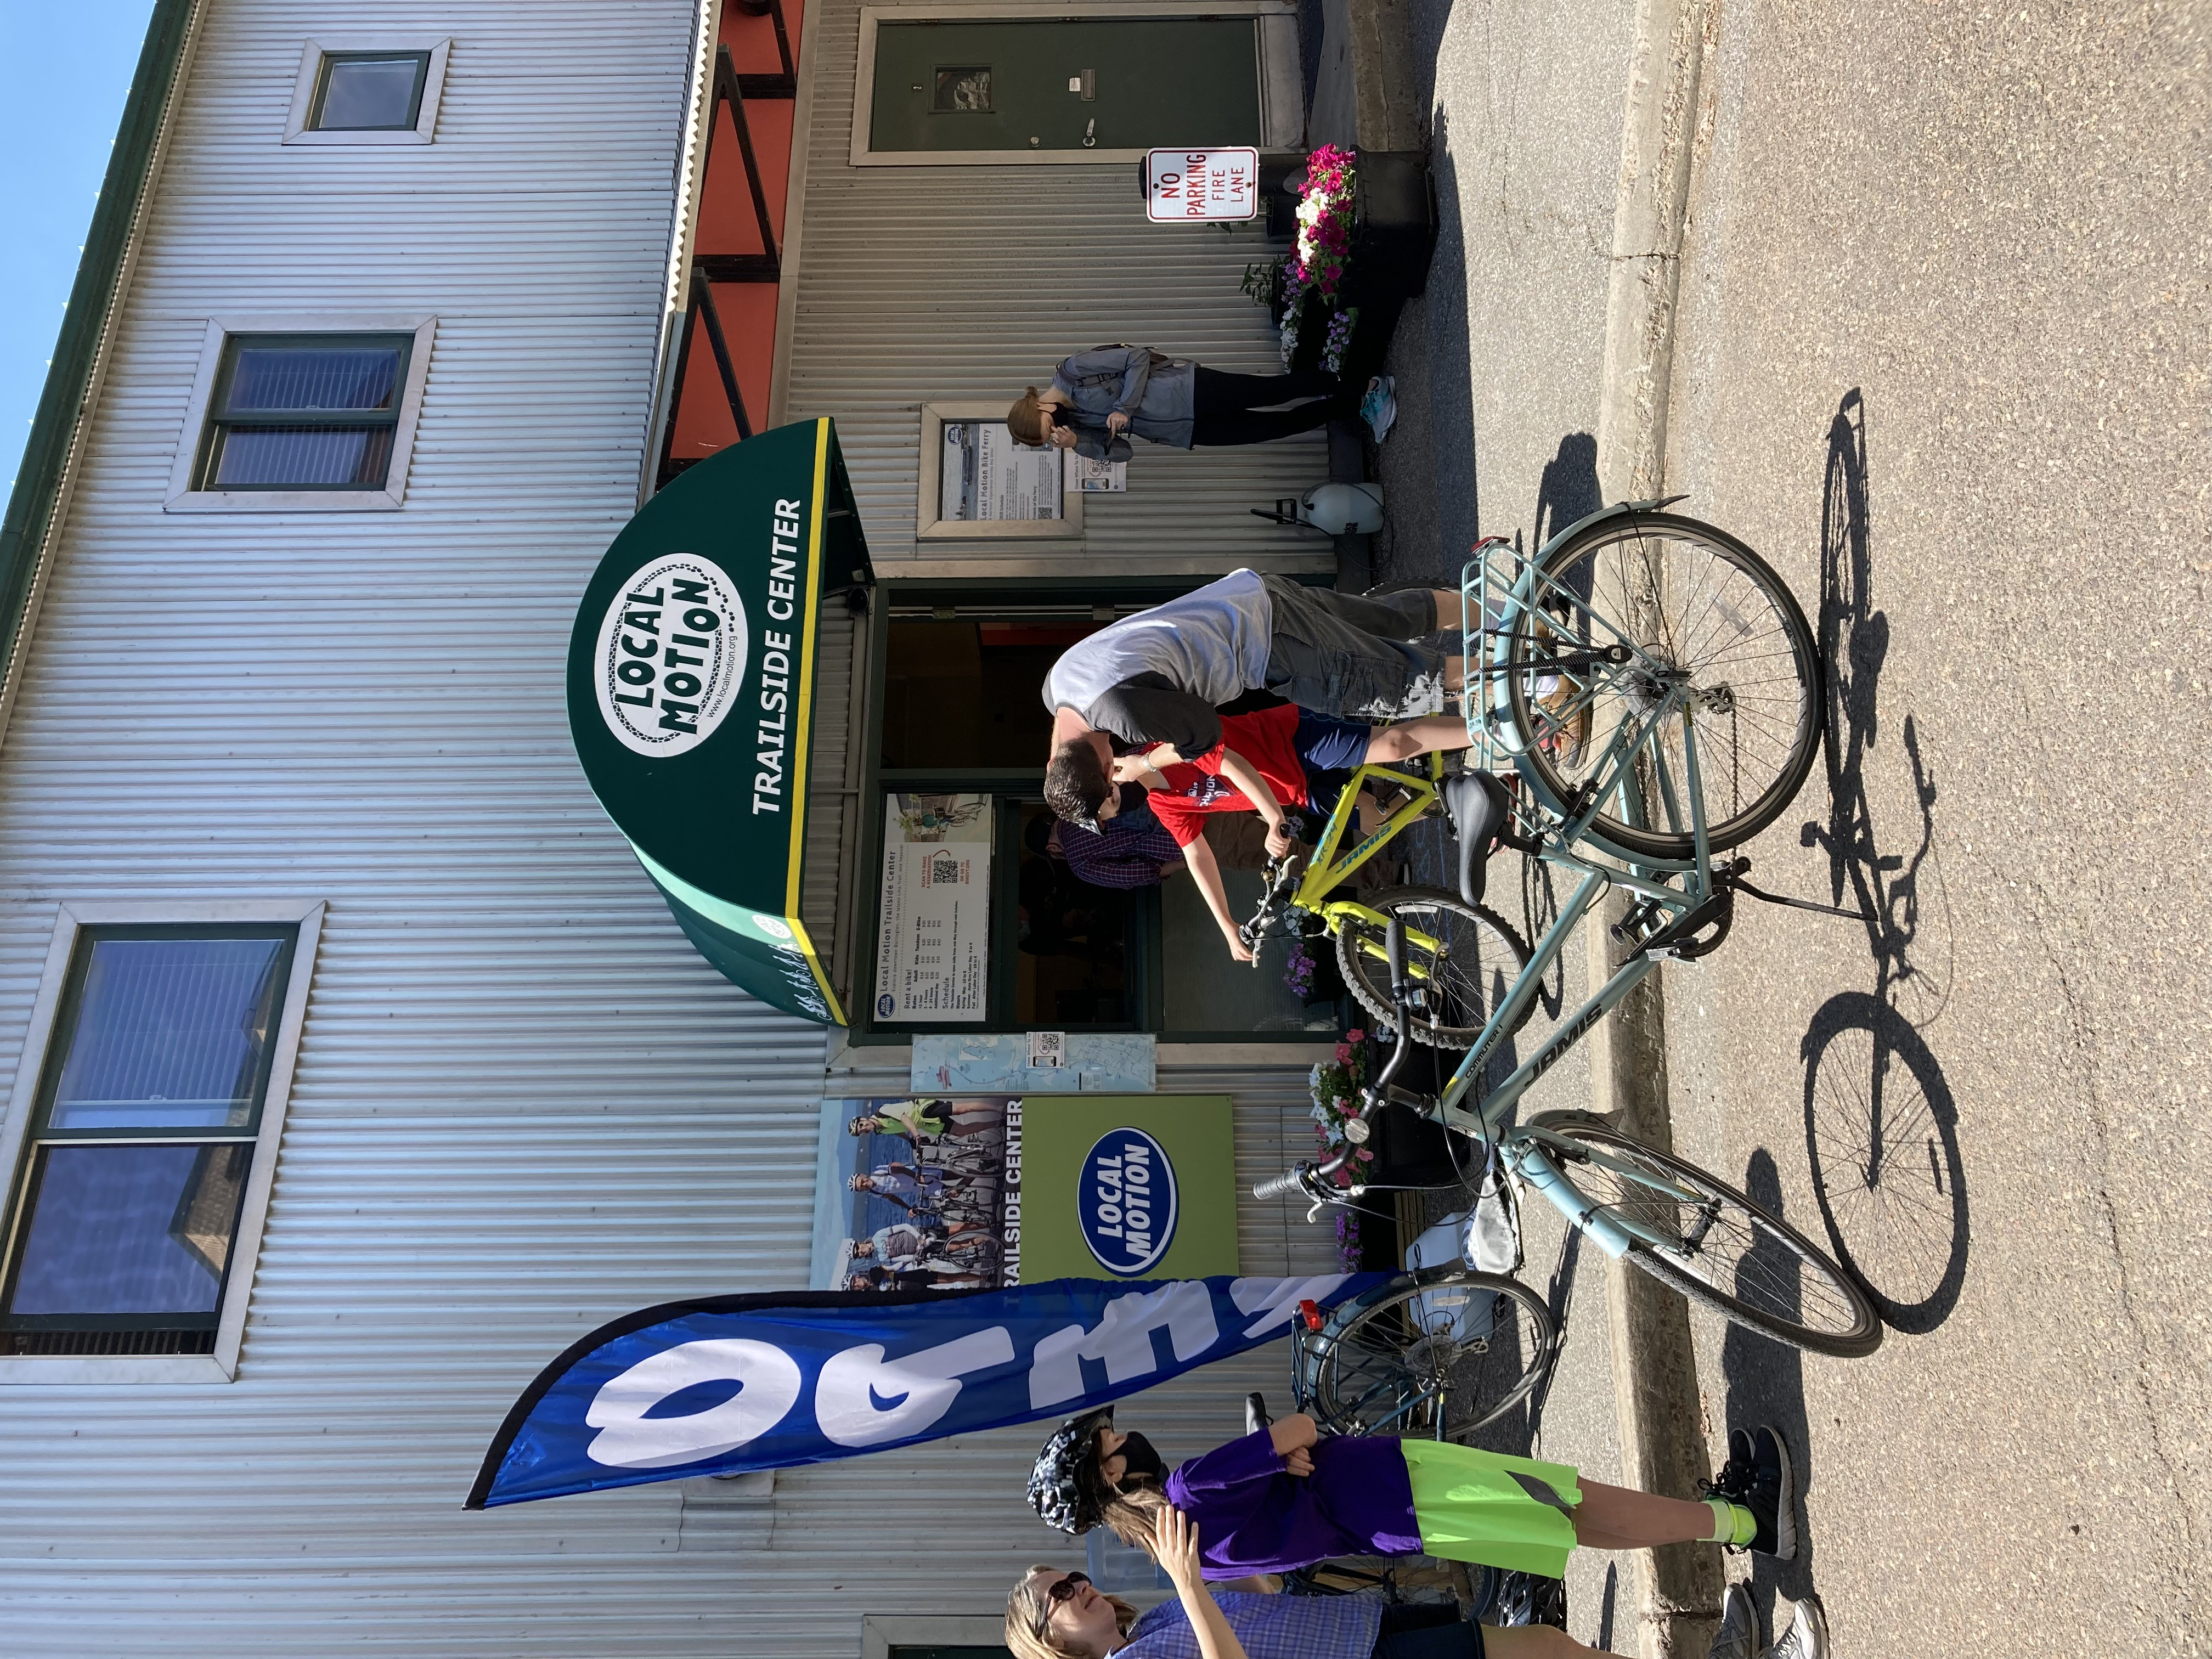 Family renting bikes at the Local Motion Trailside Center on a sunny summers day.